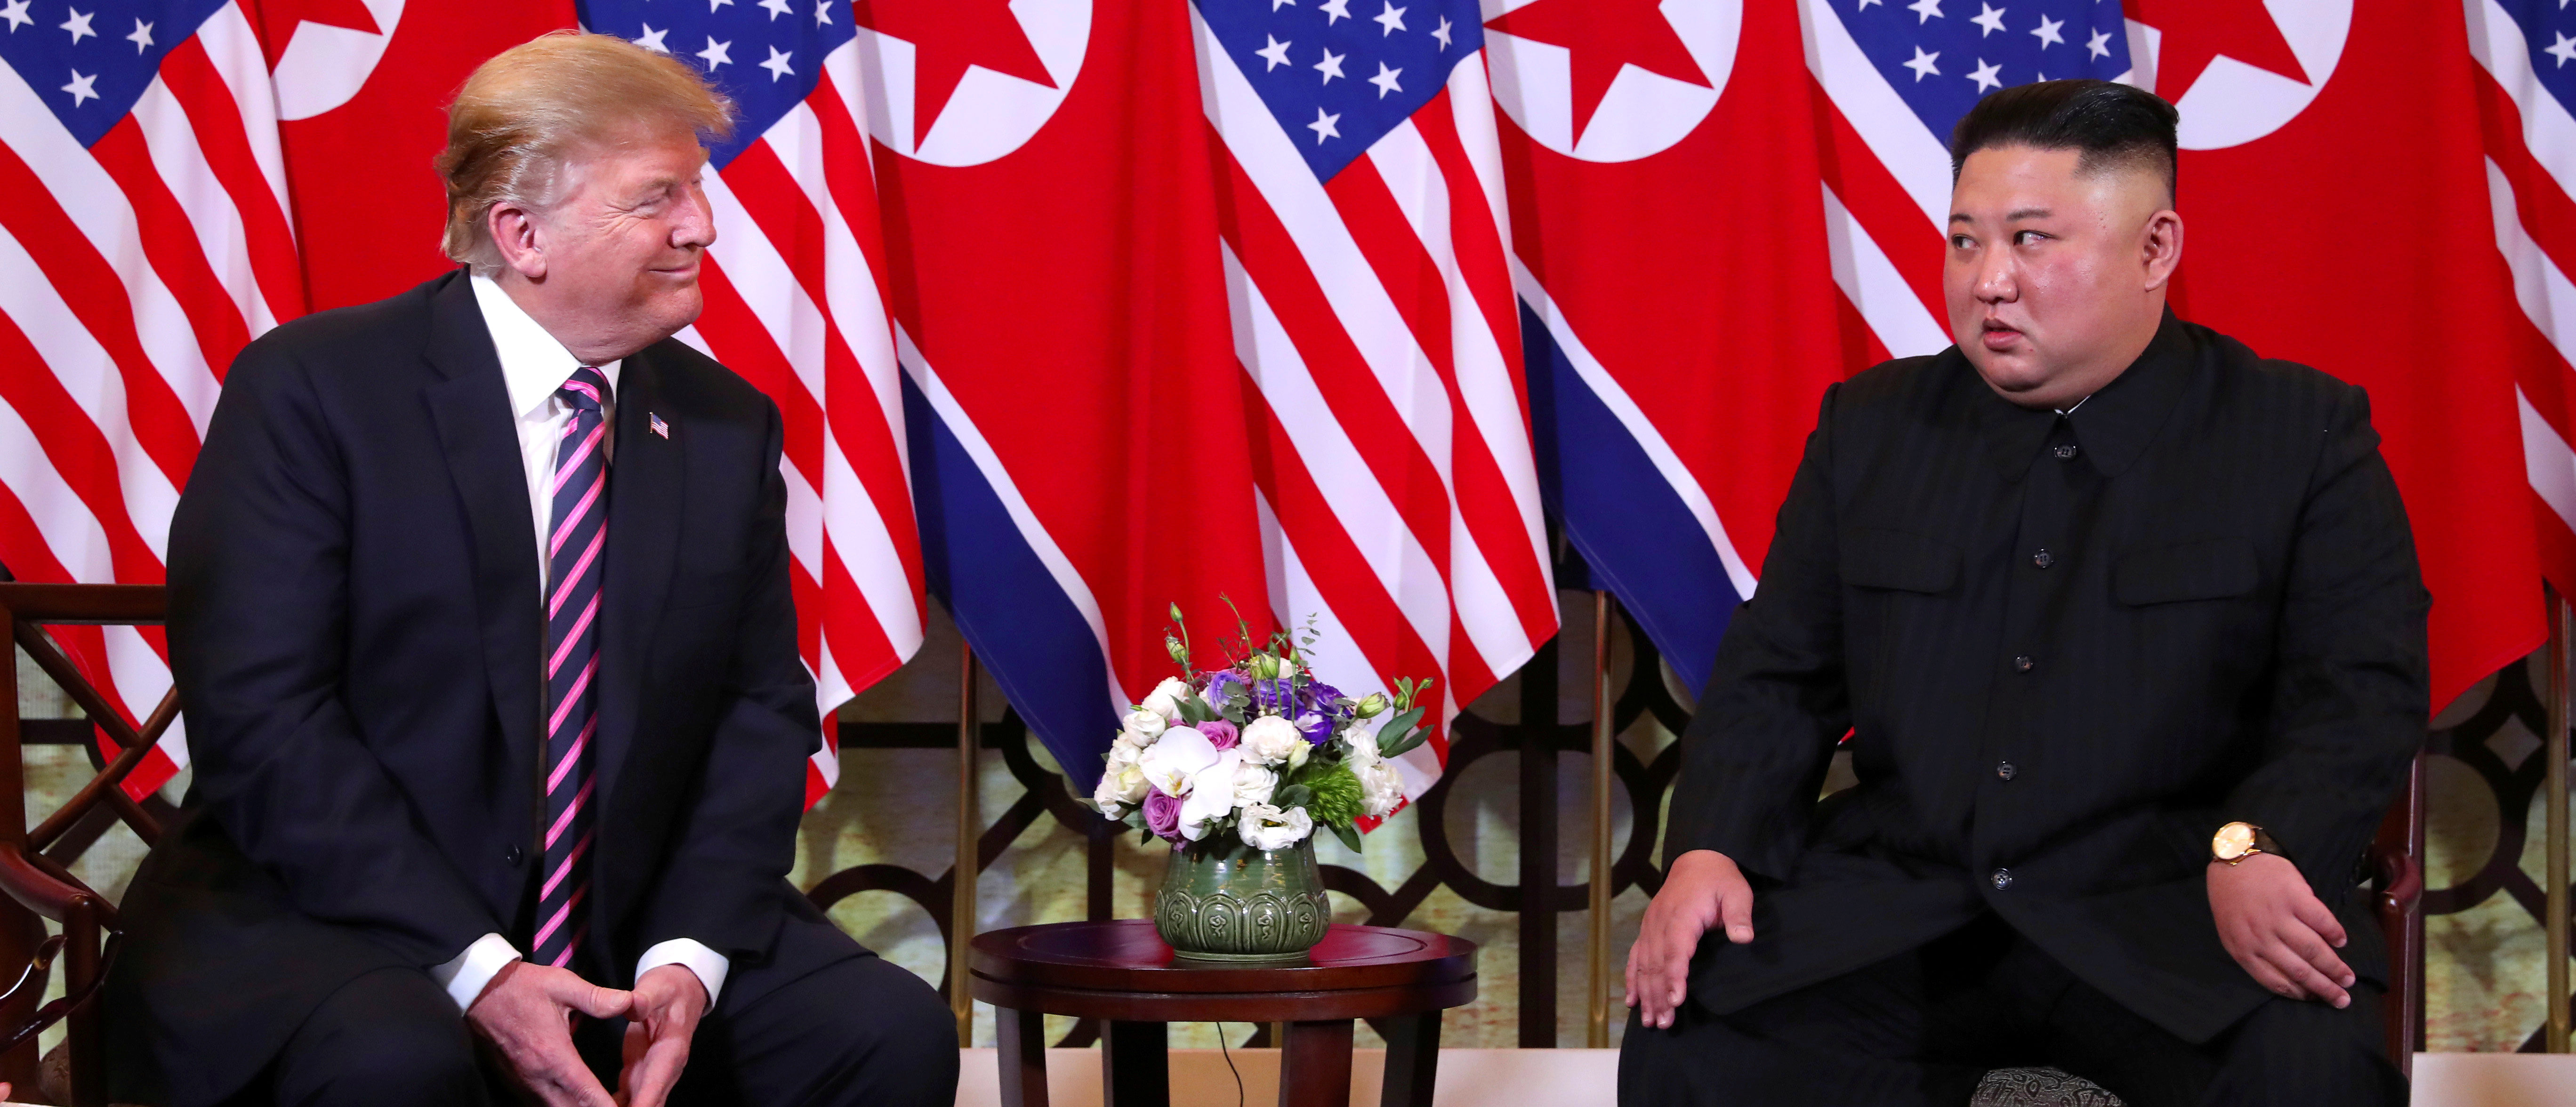 U.S. President Donald Trump and North Korean leader Kim Jong Un sit down before their one-on-one chat during the second U.S.-North Korea summit at the Metropole Hotel in Hanoi, Vietnam February 27, 2019. REUTERS/Leah Millis TPX